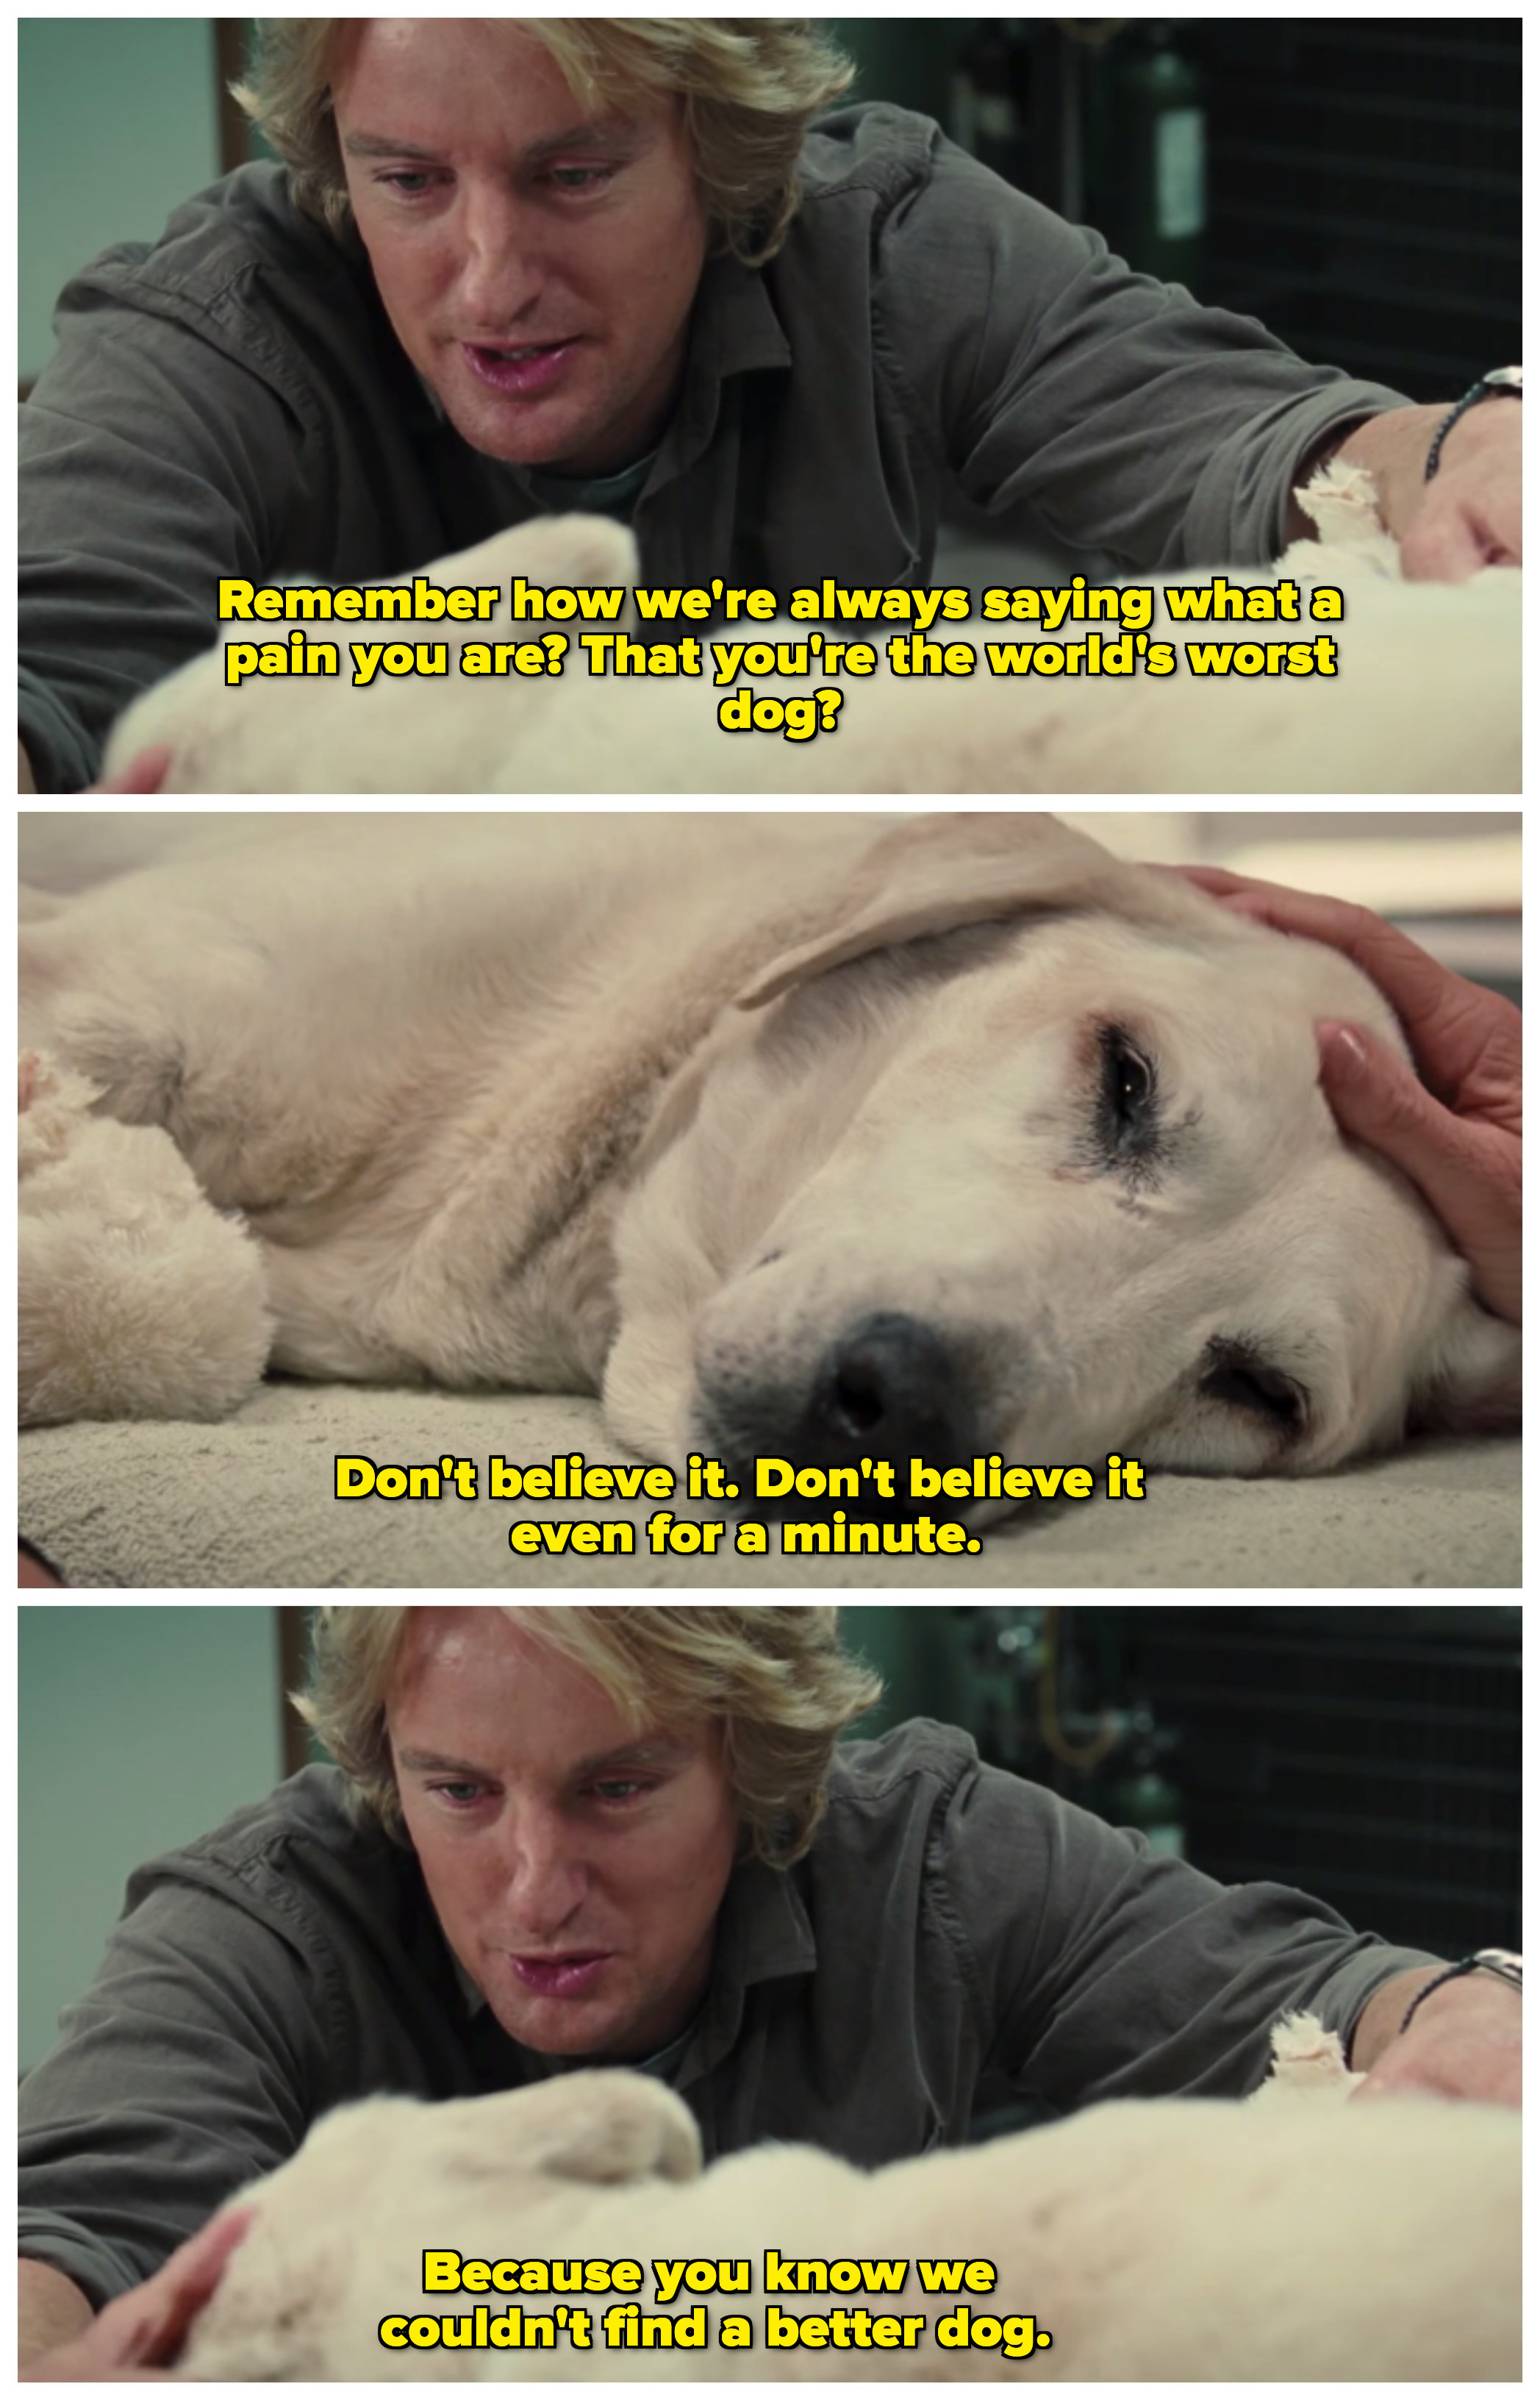 "John patting Marley, who is lying down on blanket in a veterinary examination room; John is telling Marley that even though he said he was a pain, he ""couldn't find a better dog"""